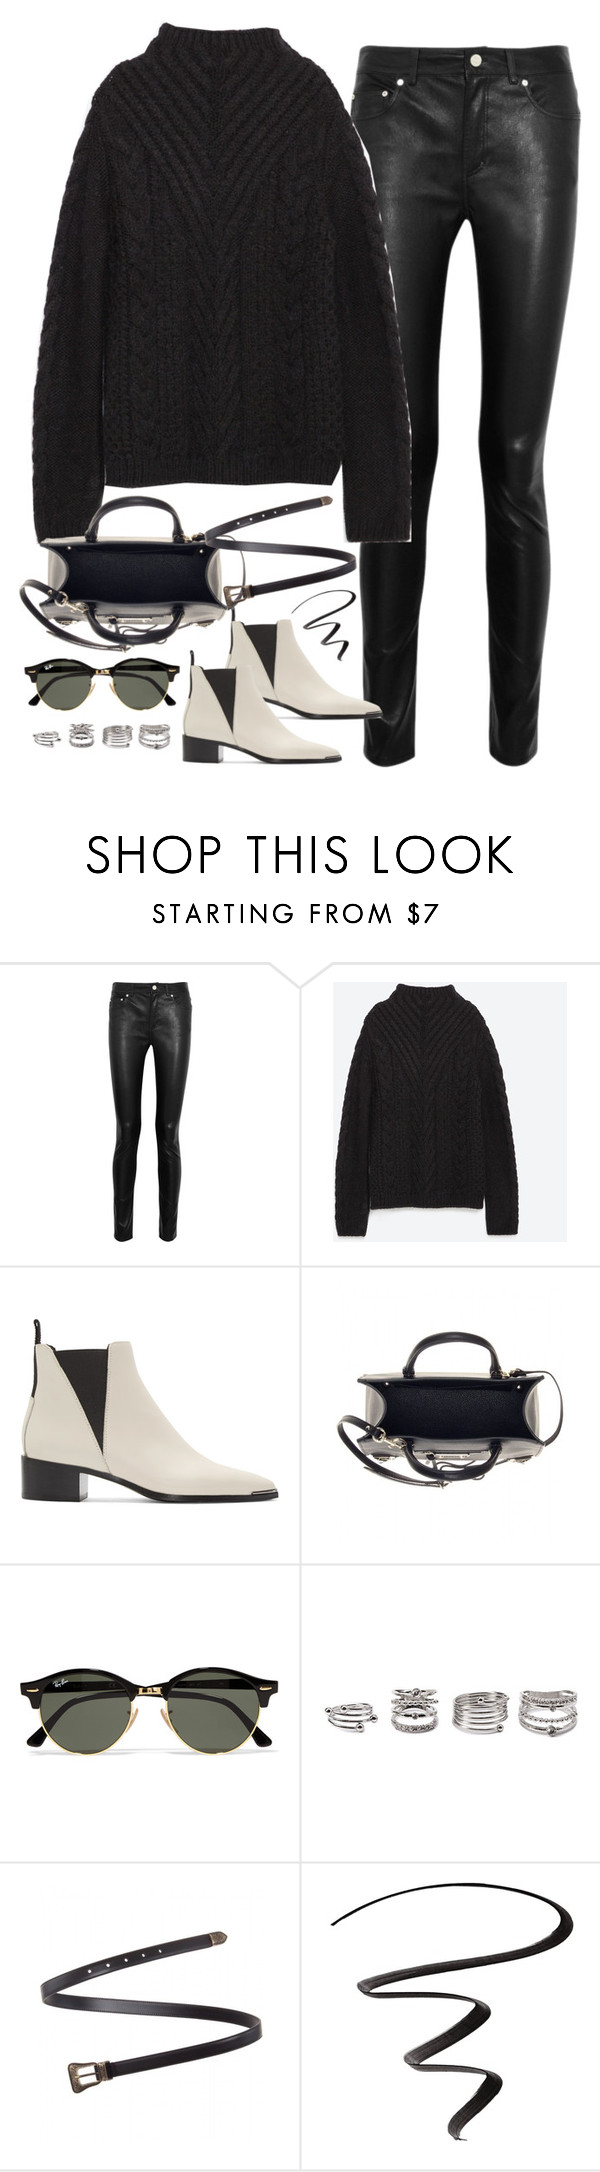 """Untitled#4402"" by fashionnfacts ❤ liked on Polyvore featuring Acne Studios, Zara, Balenciaga, Ray-Ban, Forever 21, Yves Saint Laurent and L'Oréal Paris"